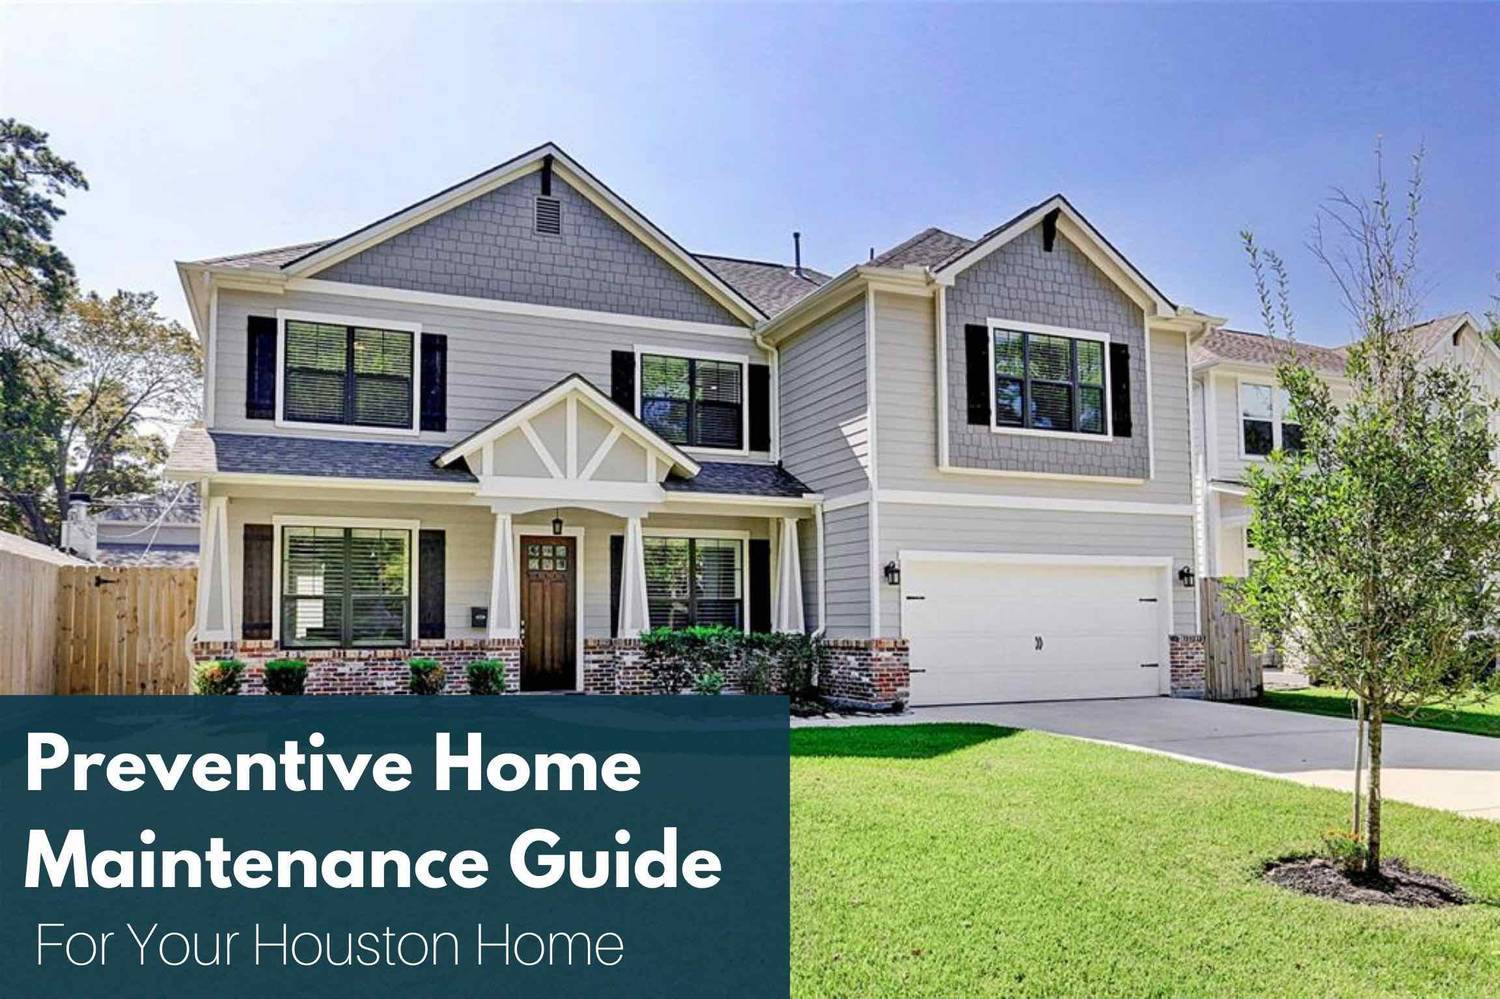 How To Get Your House Ready To Sell: Preventive Home Maintenance Guide For Your Houston Home